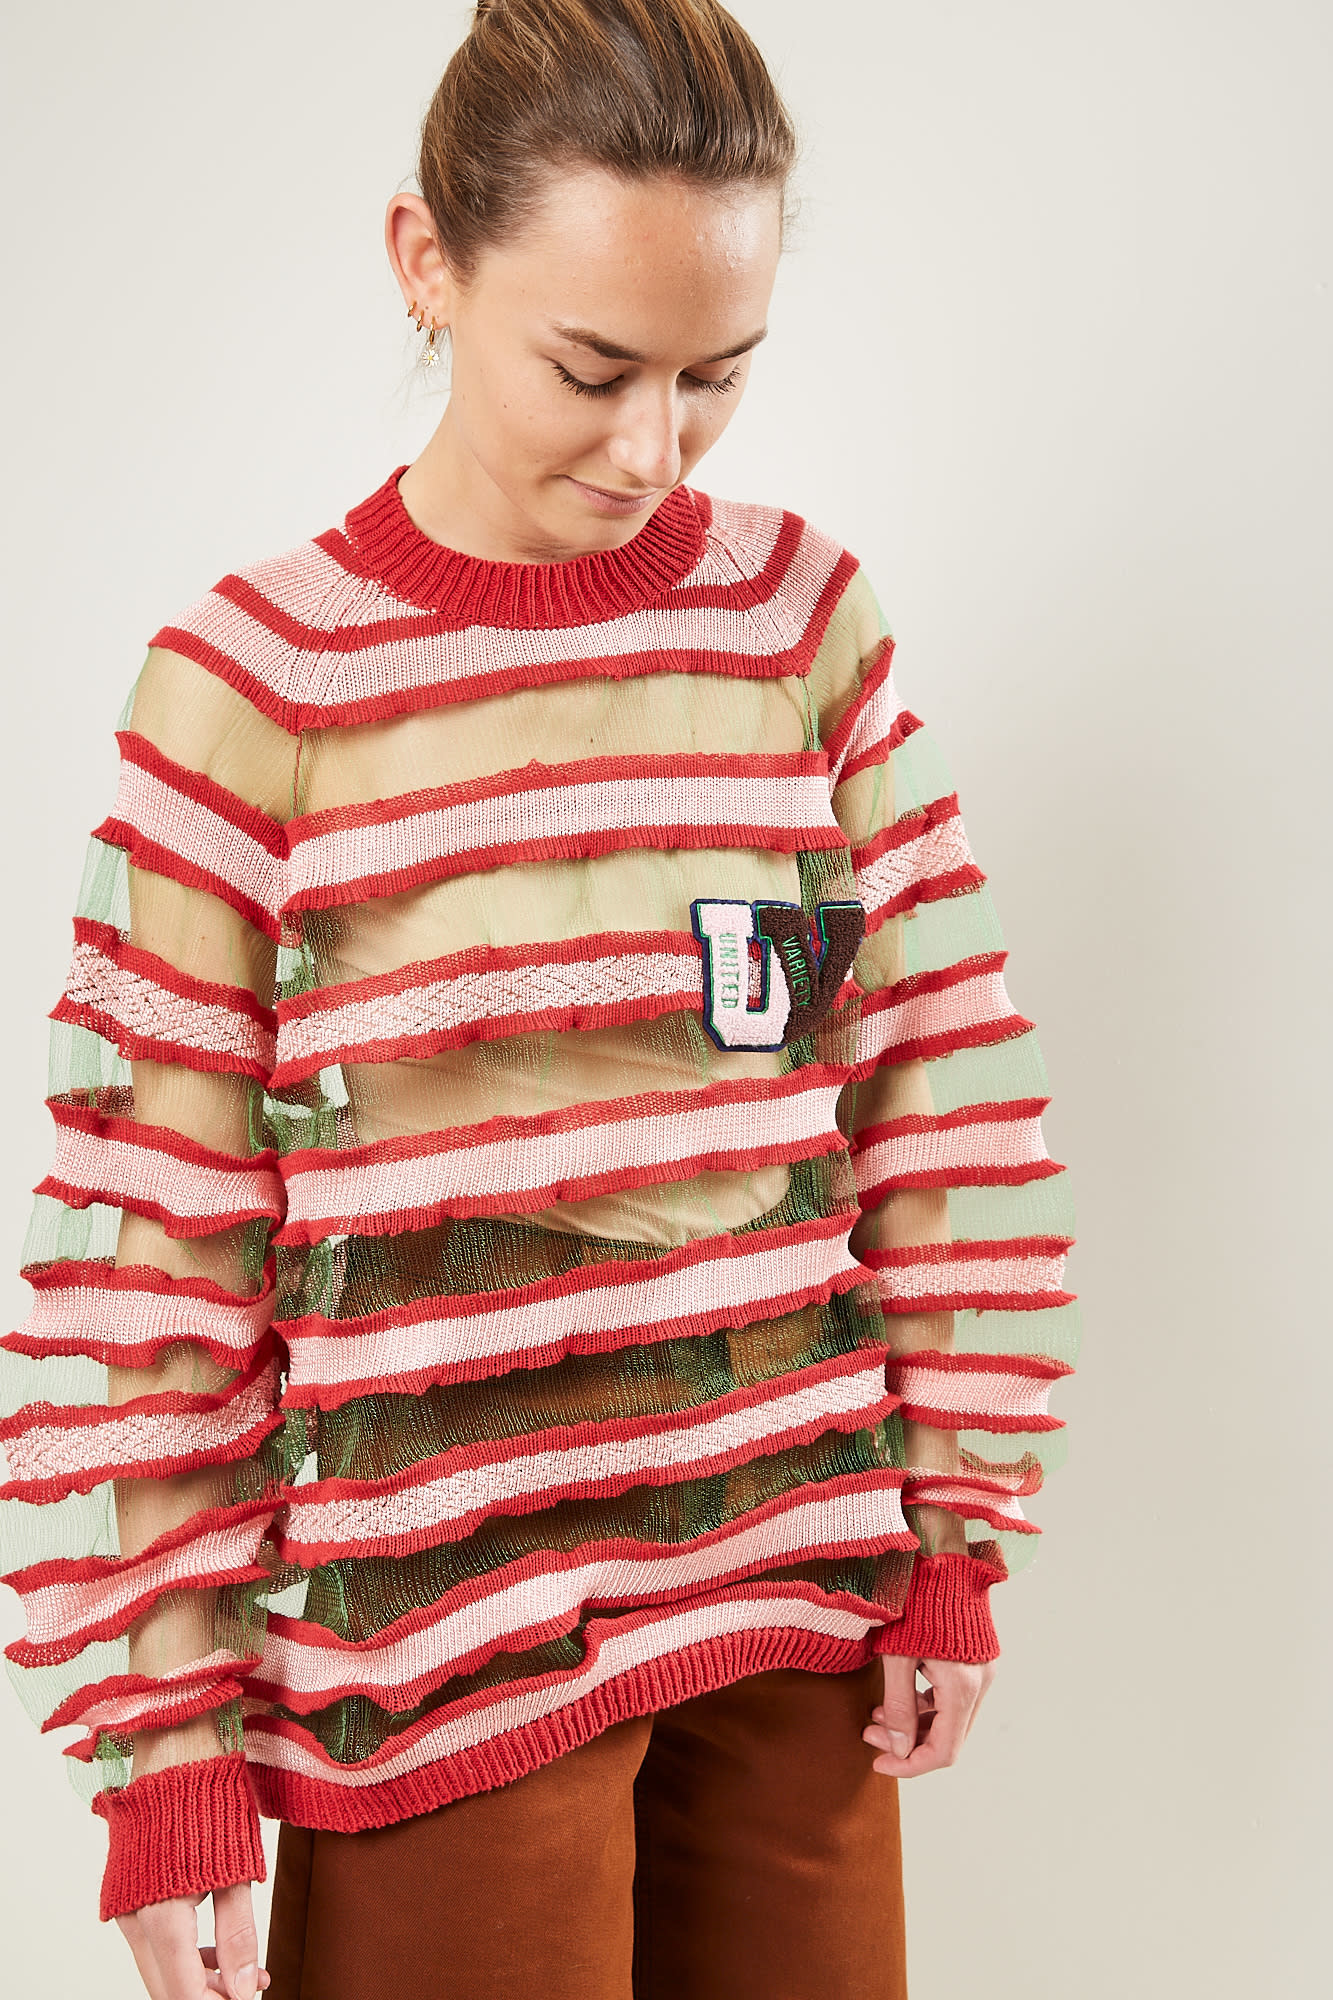 Survival of the fashionest - Skins stripes big sweater